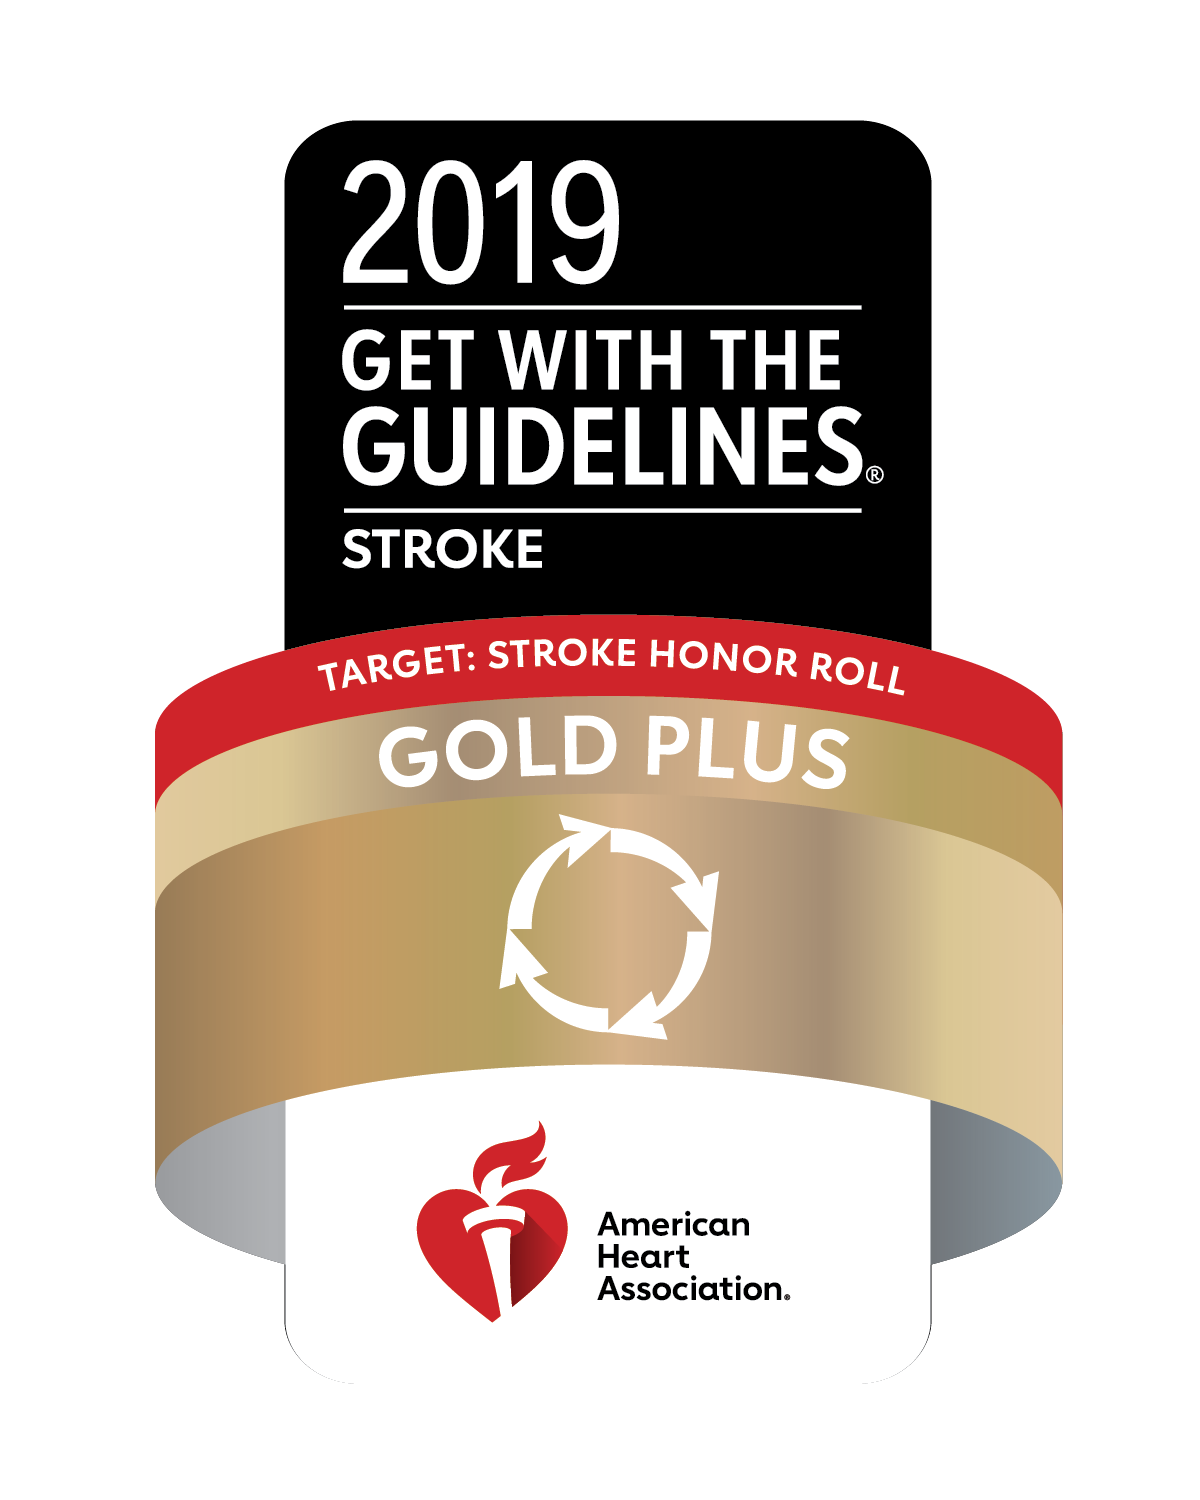 Get With the GuidelinesSM Gold Plus for Stroke